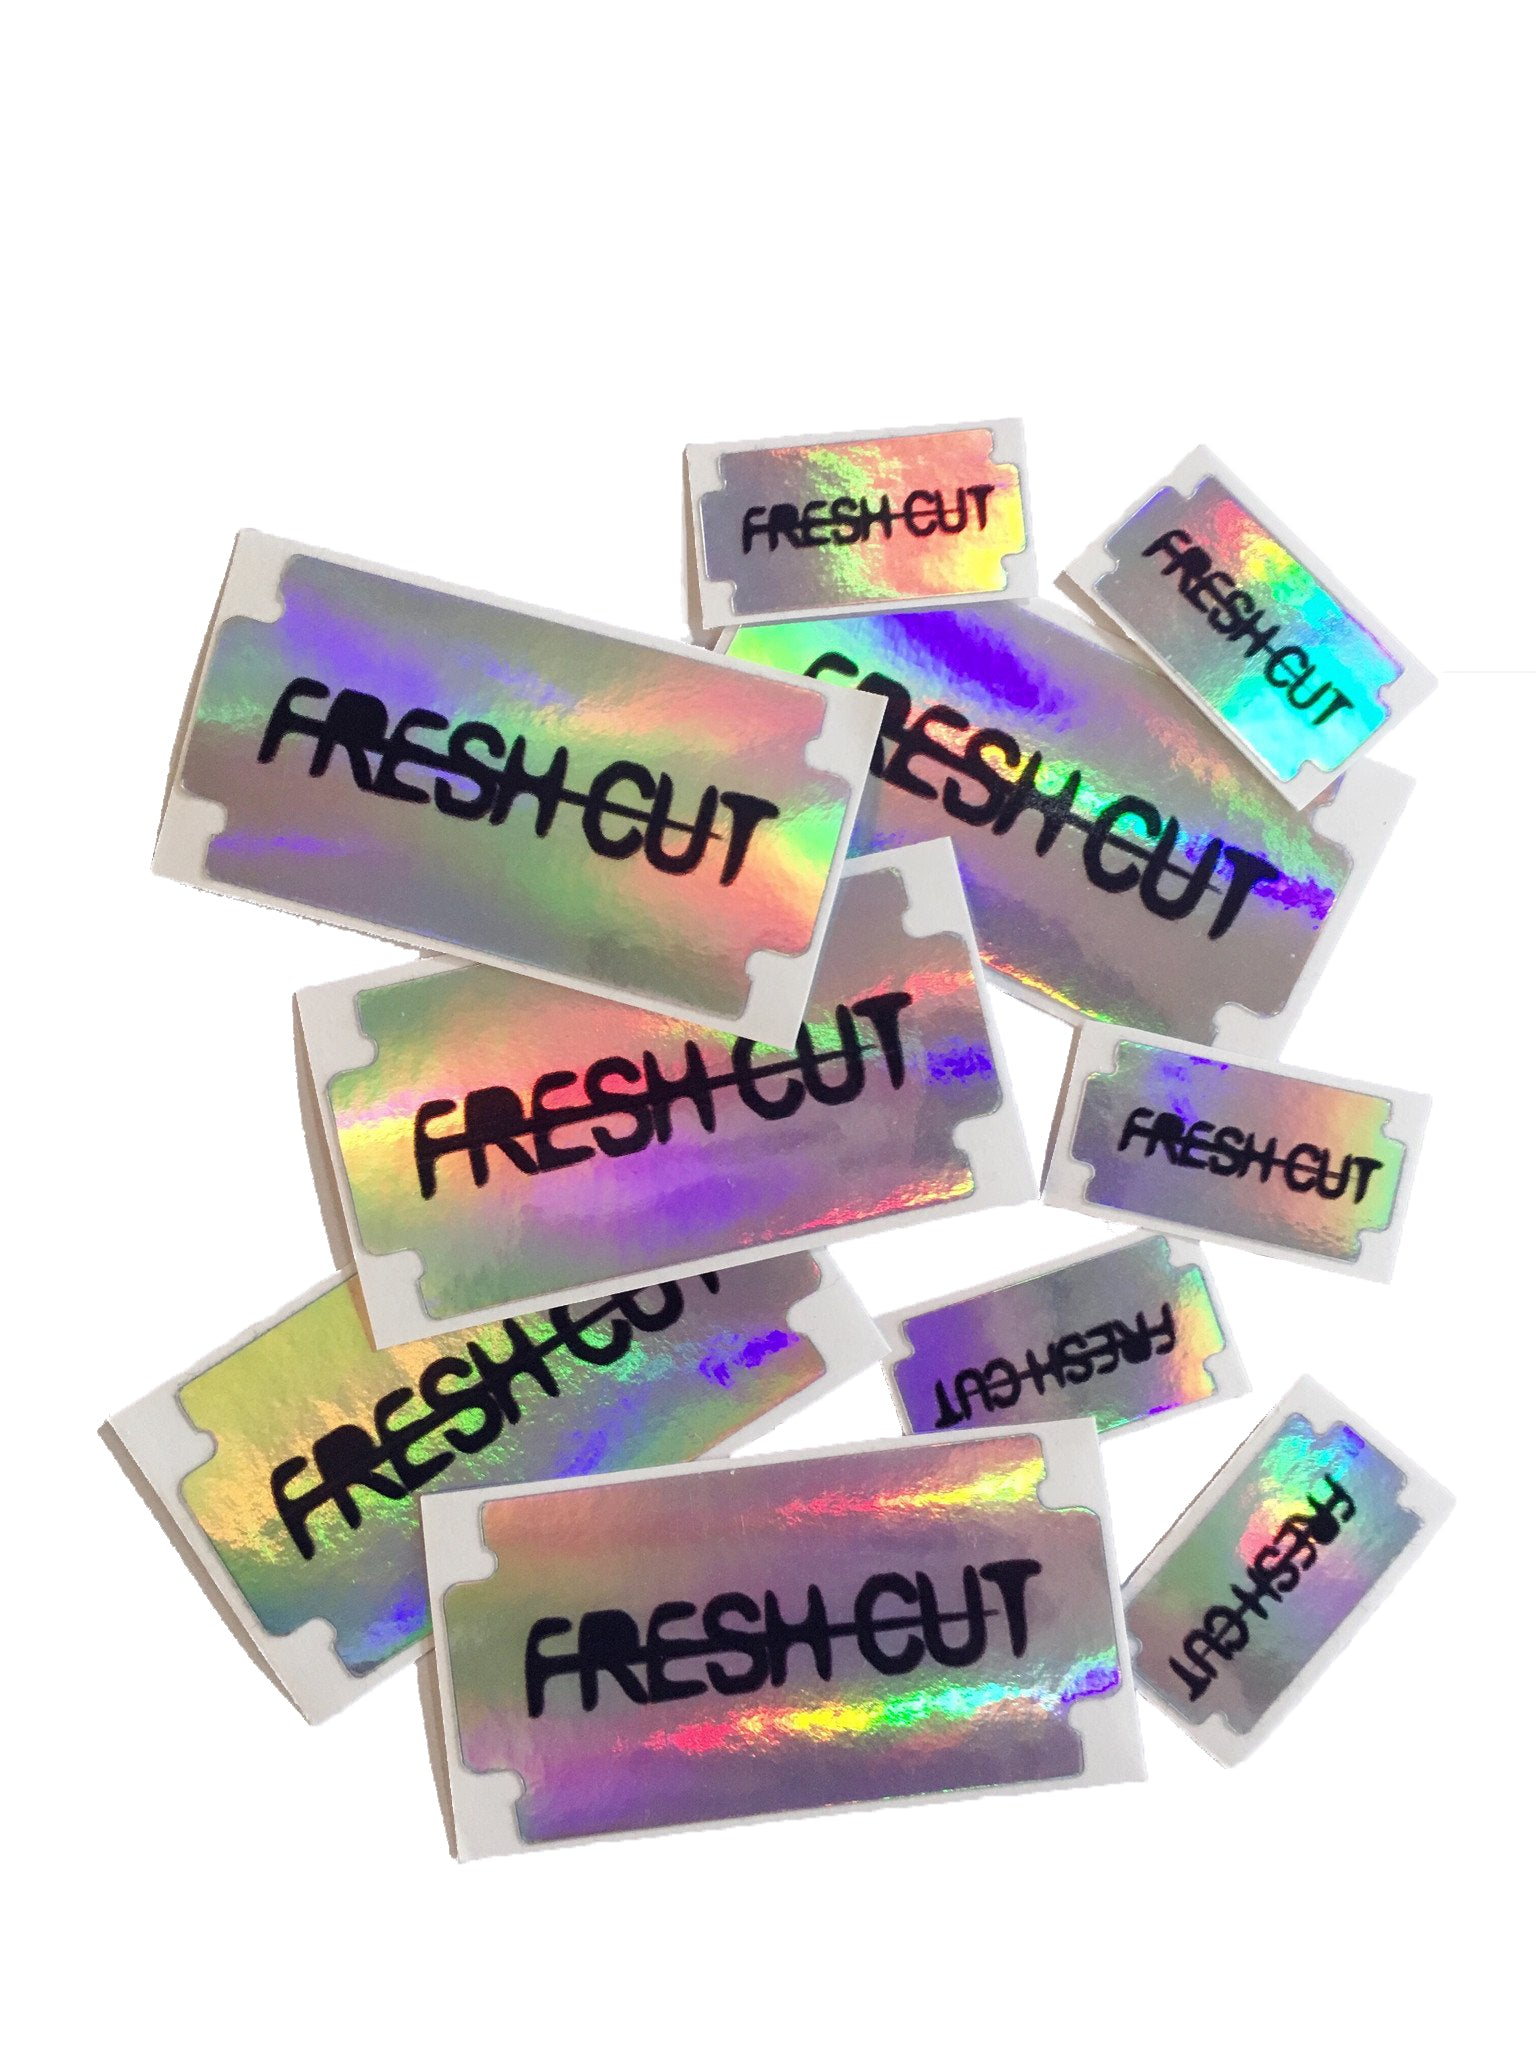 A set of Holographic Stickers